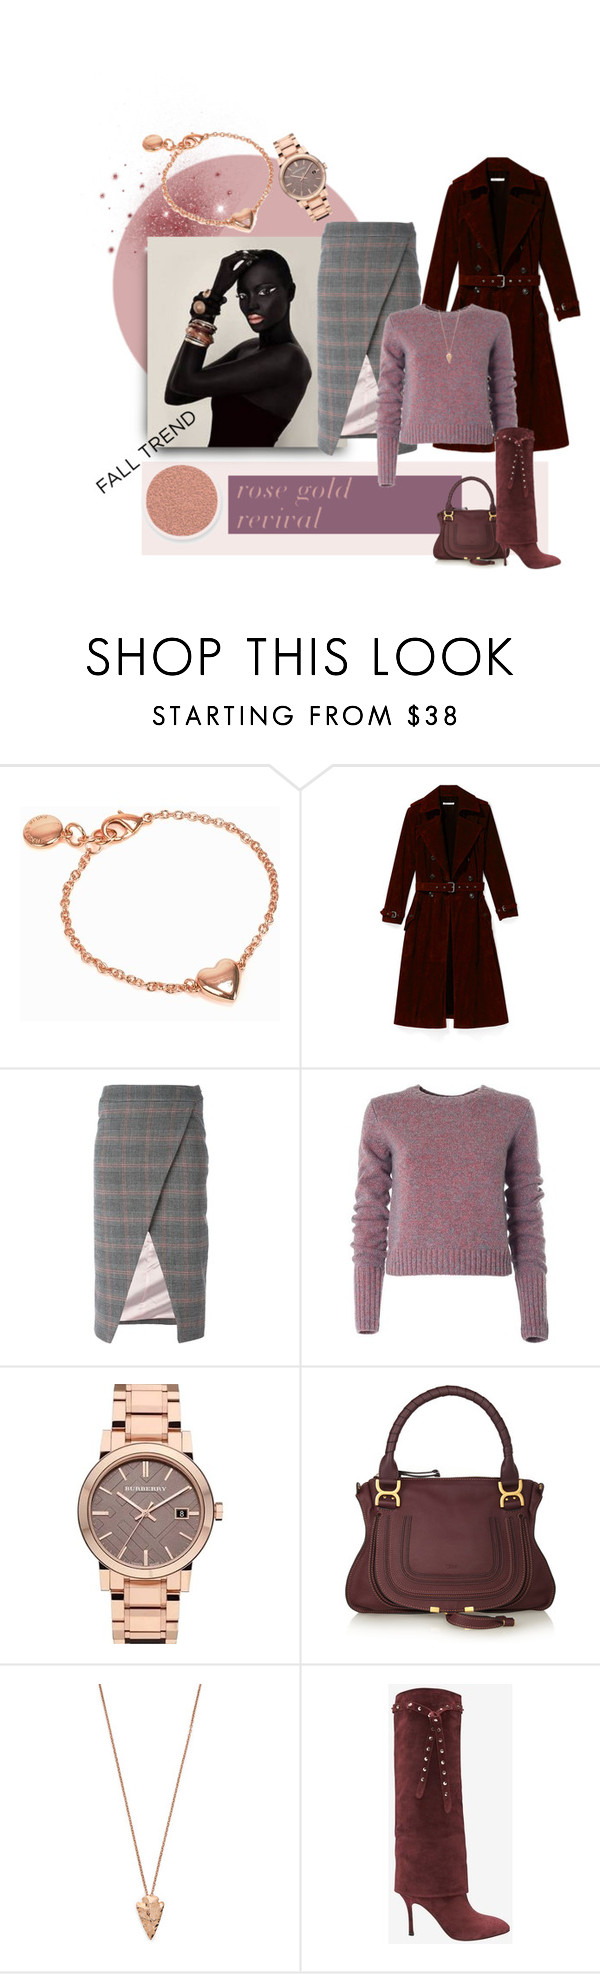 """Rose Revival"" by michelletheaflack ❤ liked on Polyvore featuring Nikon, Snö Of Sweden, Rebecca Minkoff, Filles à papa, Marc by Marc Jacobs, Burberry, Chloé, Pamela Love, Valentino and rosegold"